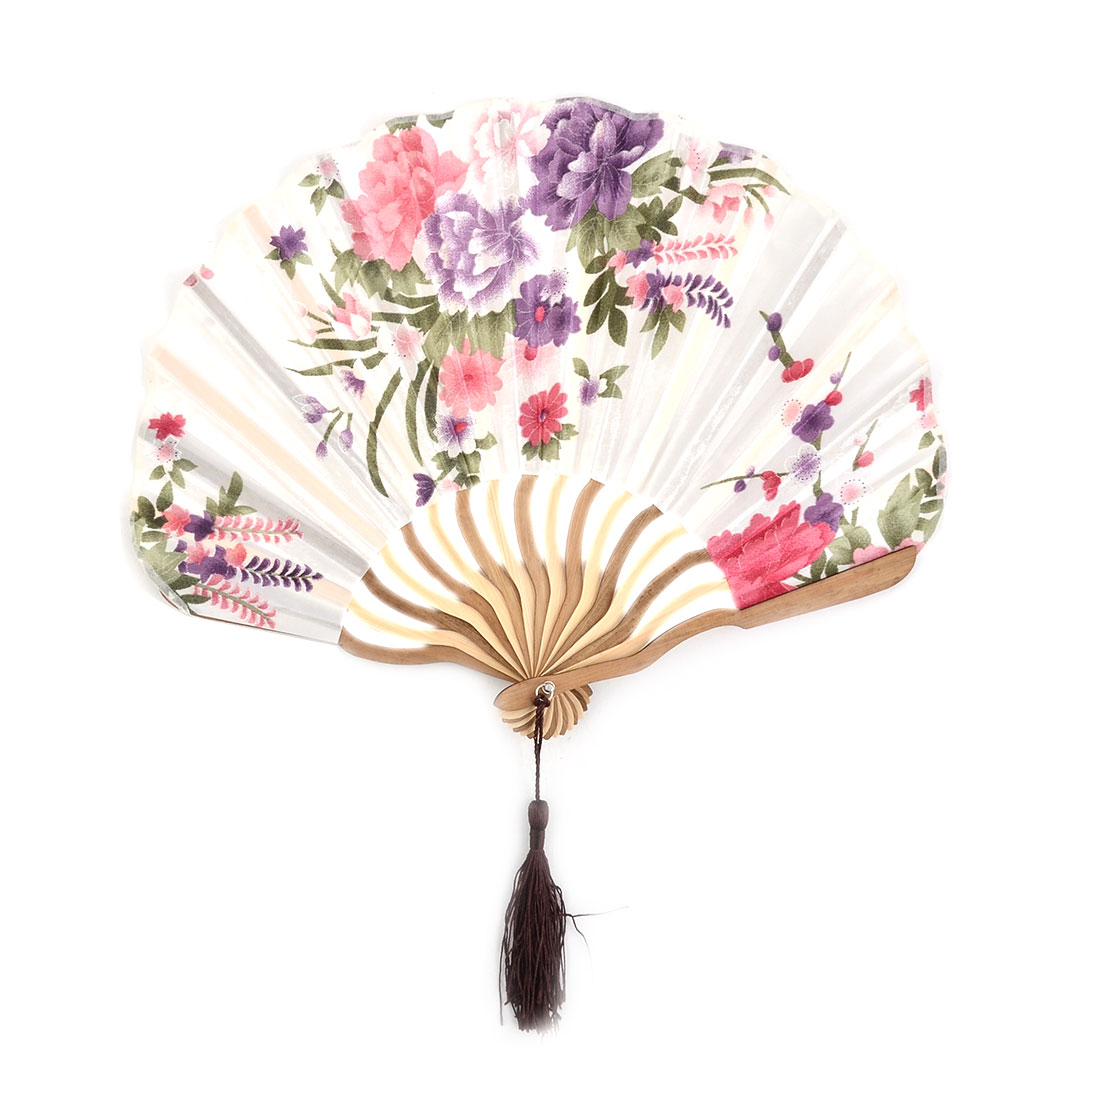 Lady Polyester Flower Printed Tassel Decor Folding Hand Fan 9.6 Inches Length